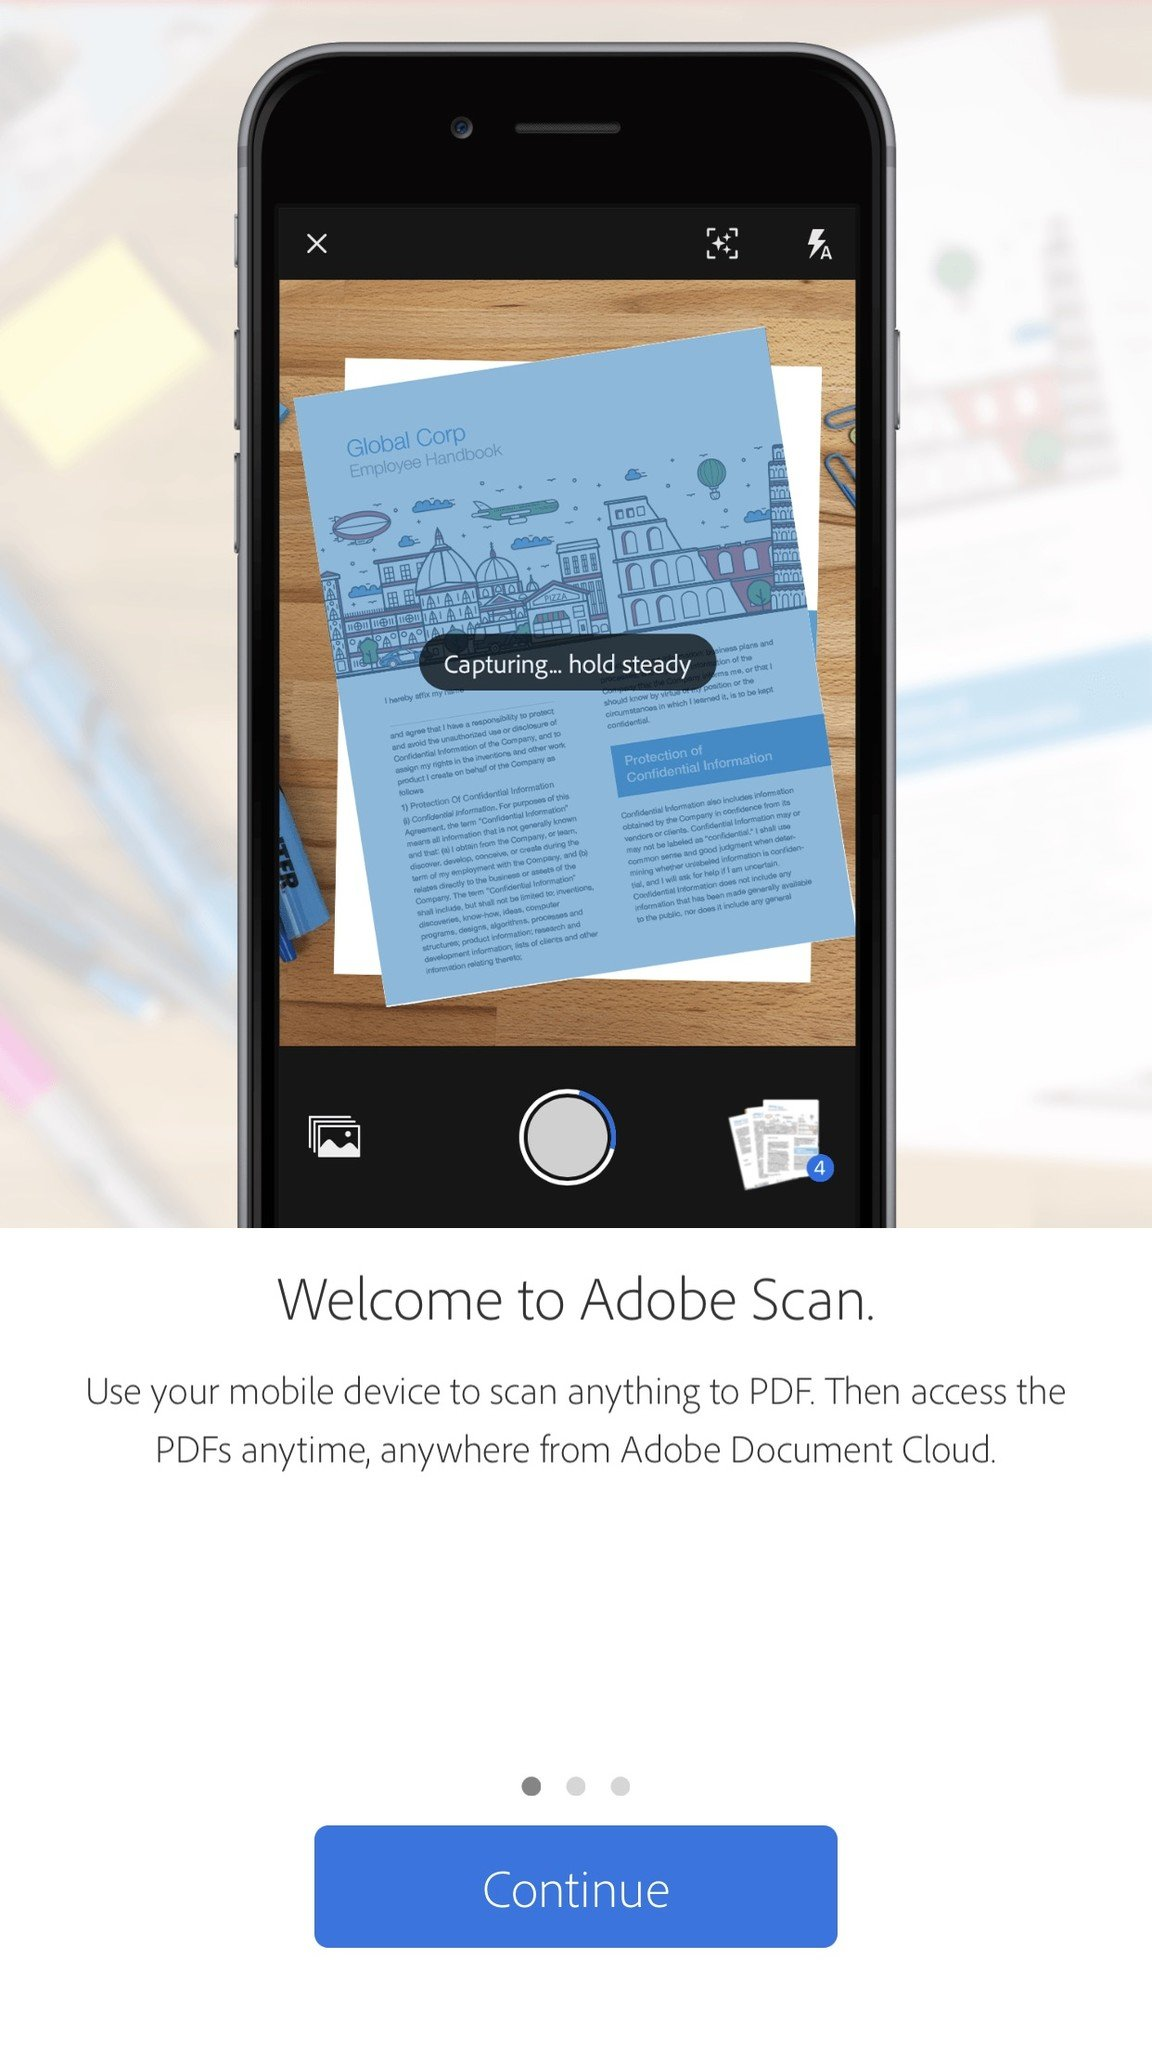 Best document scanning apps with OCR for iPhone | iMore